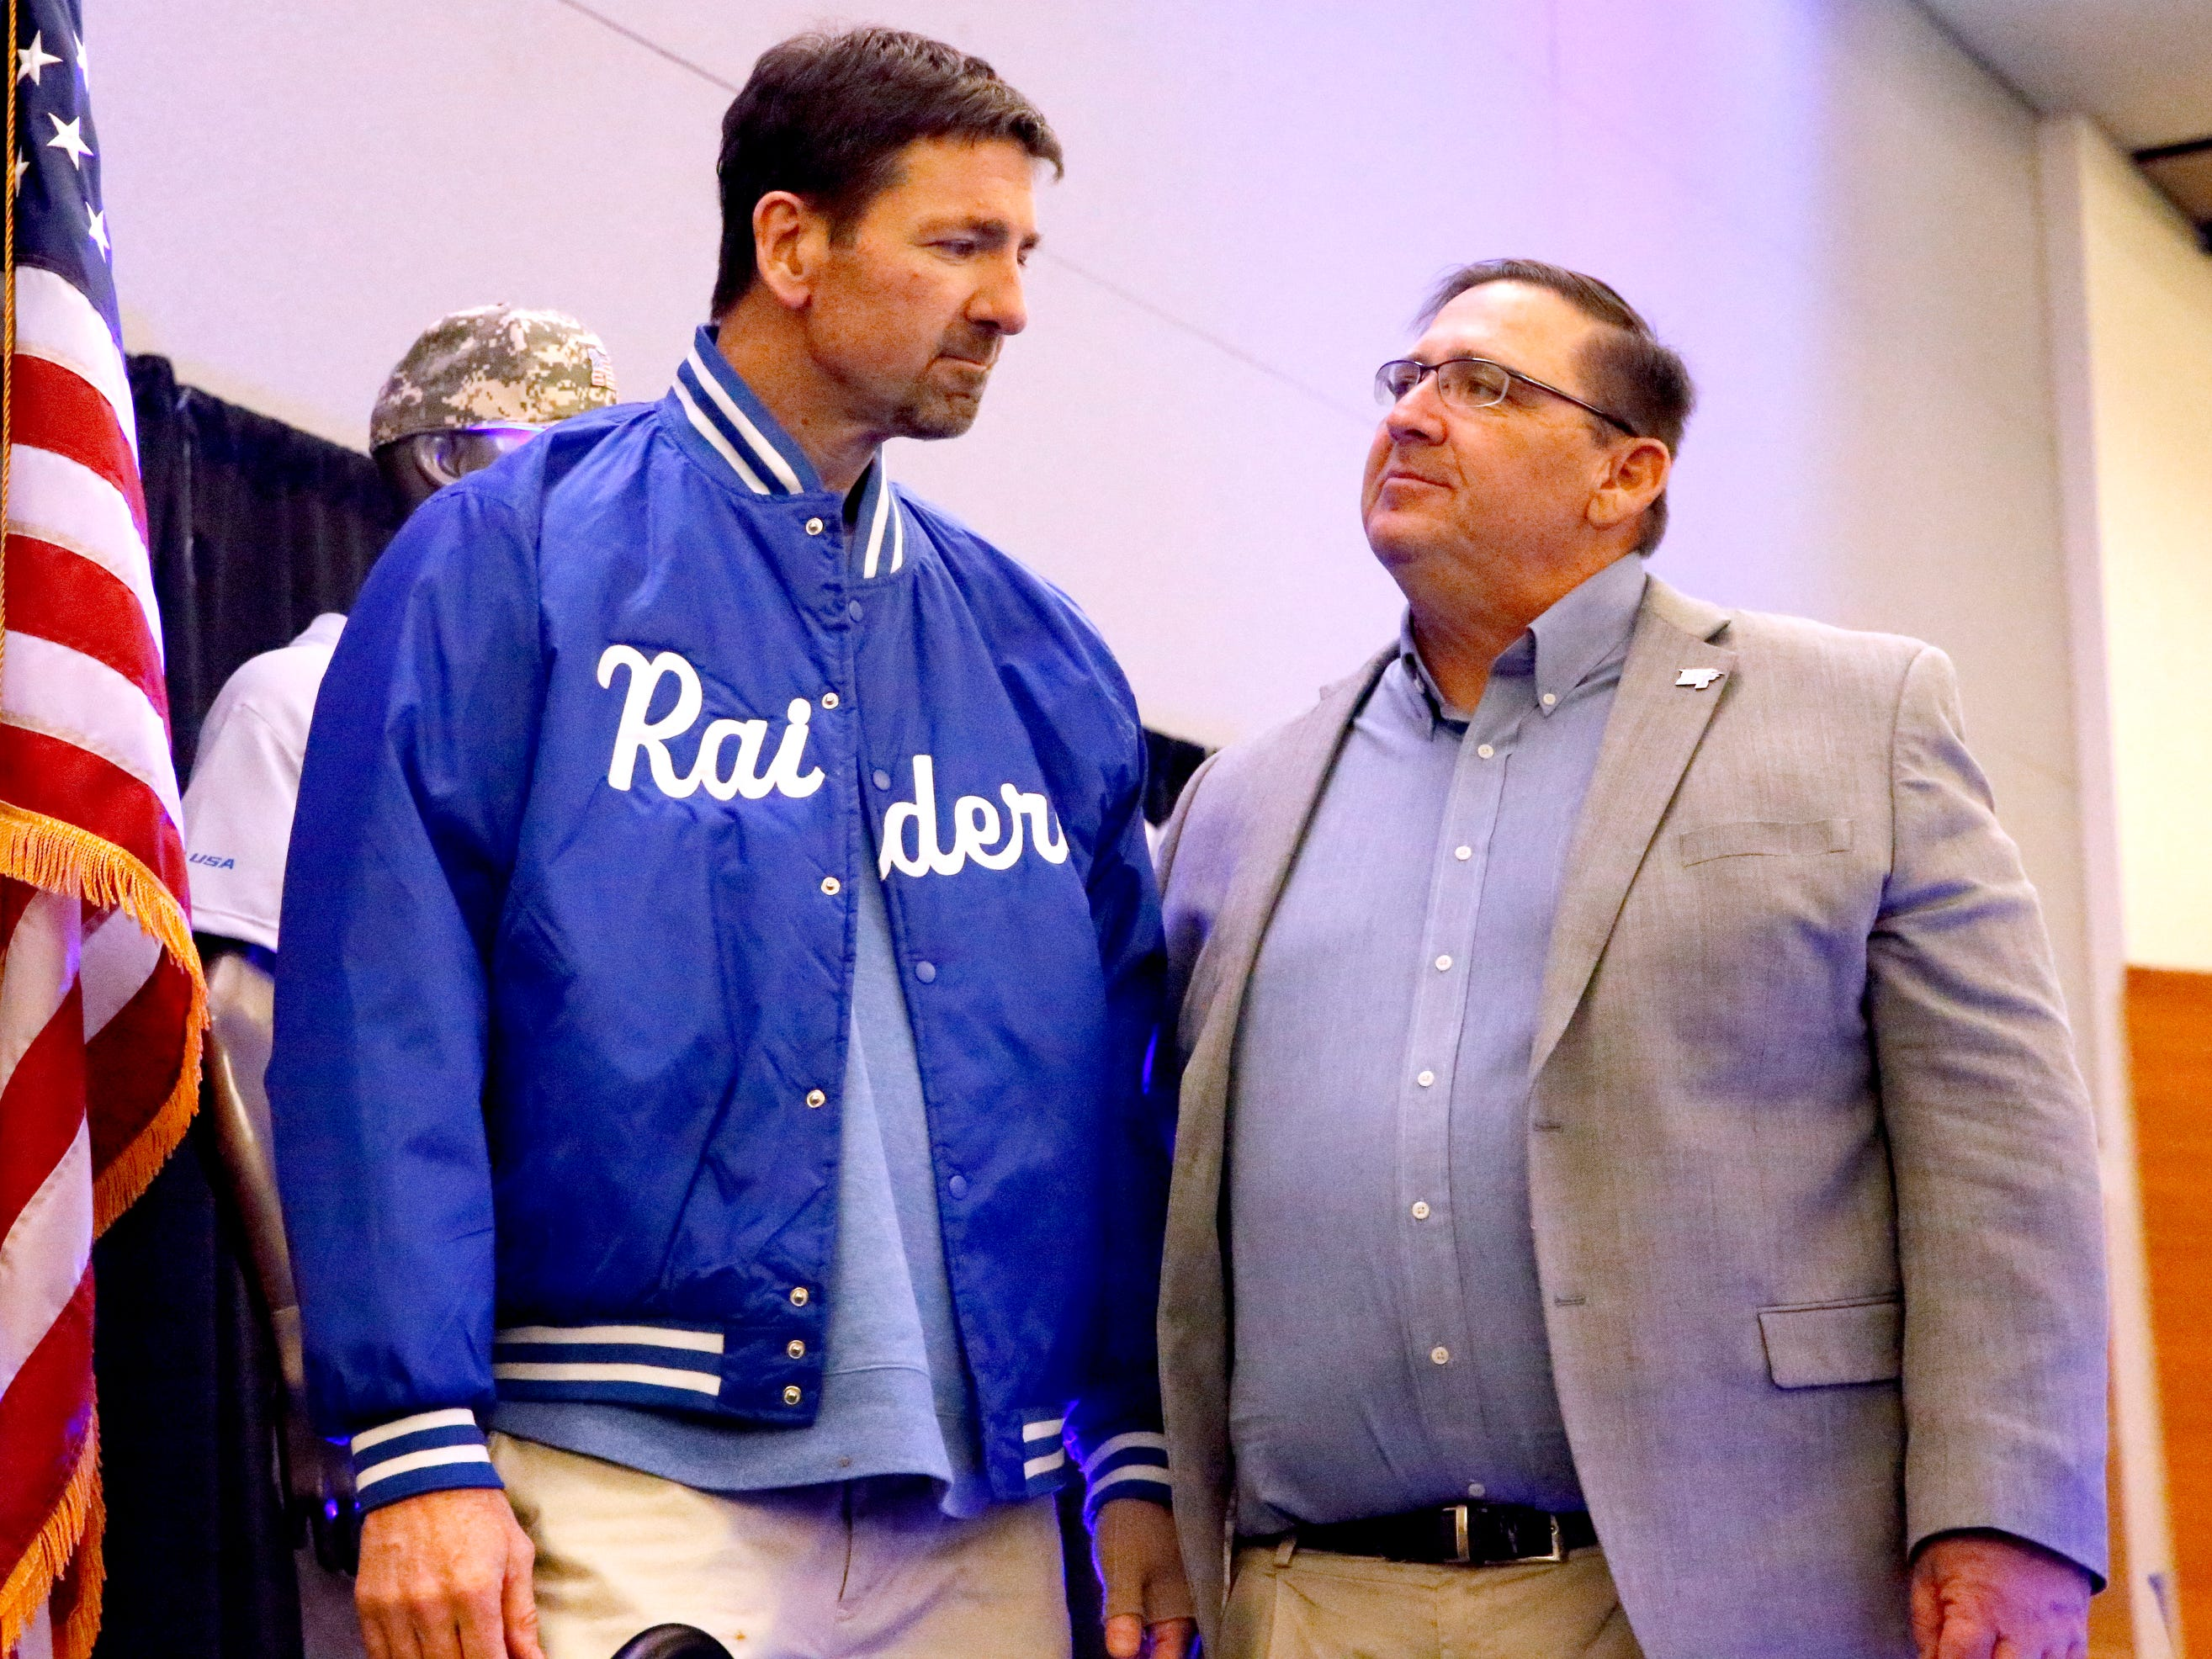 MTSU's new baseball coach Jim Toman, right, stands next to George Zimmerman after Zimmerman was named this years Railbird on Friday, Feb. 1, 2019, during the annual Groundhog Day luncheon.